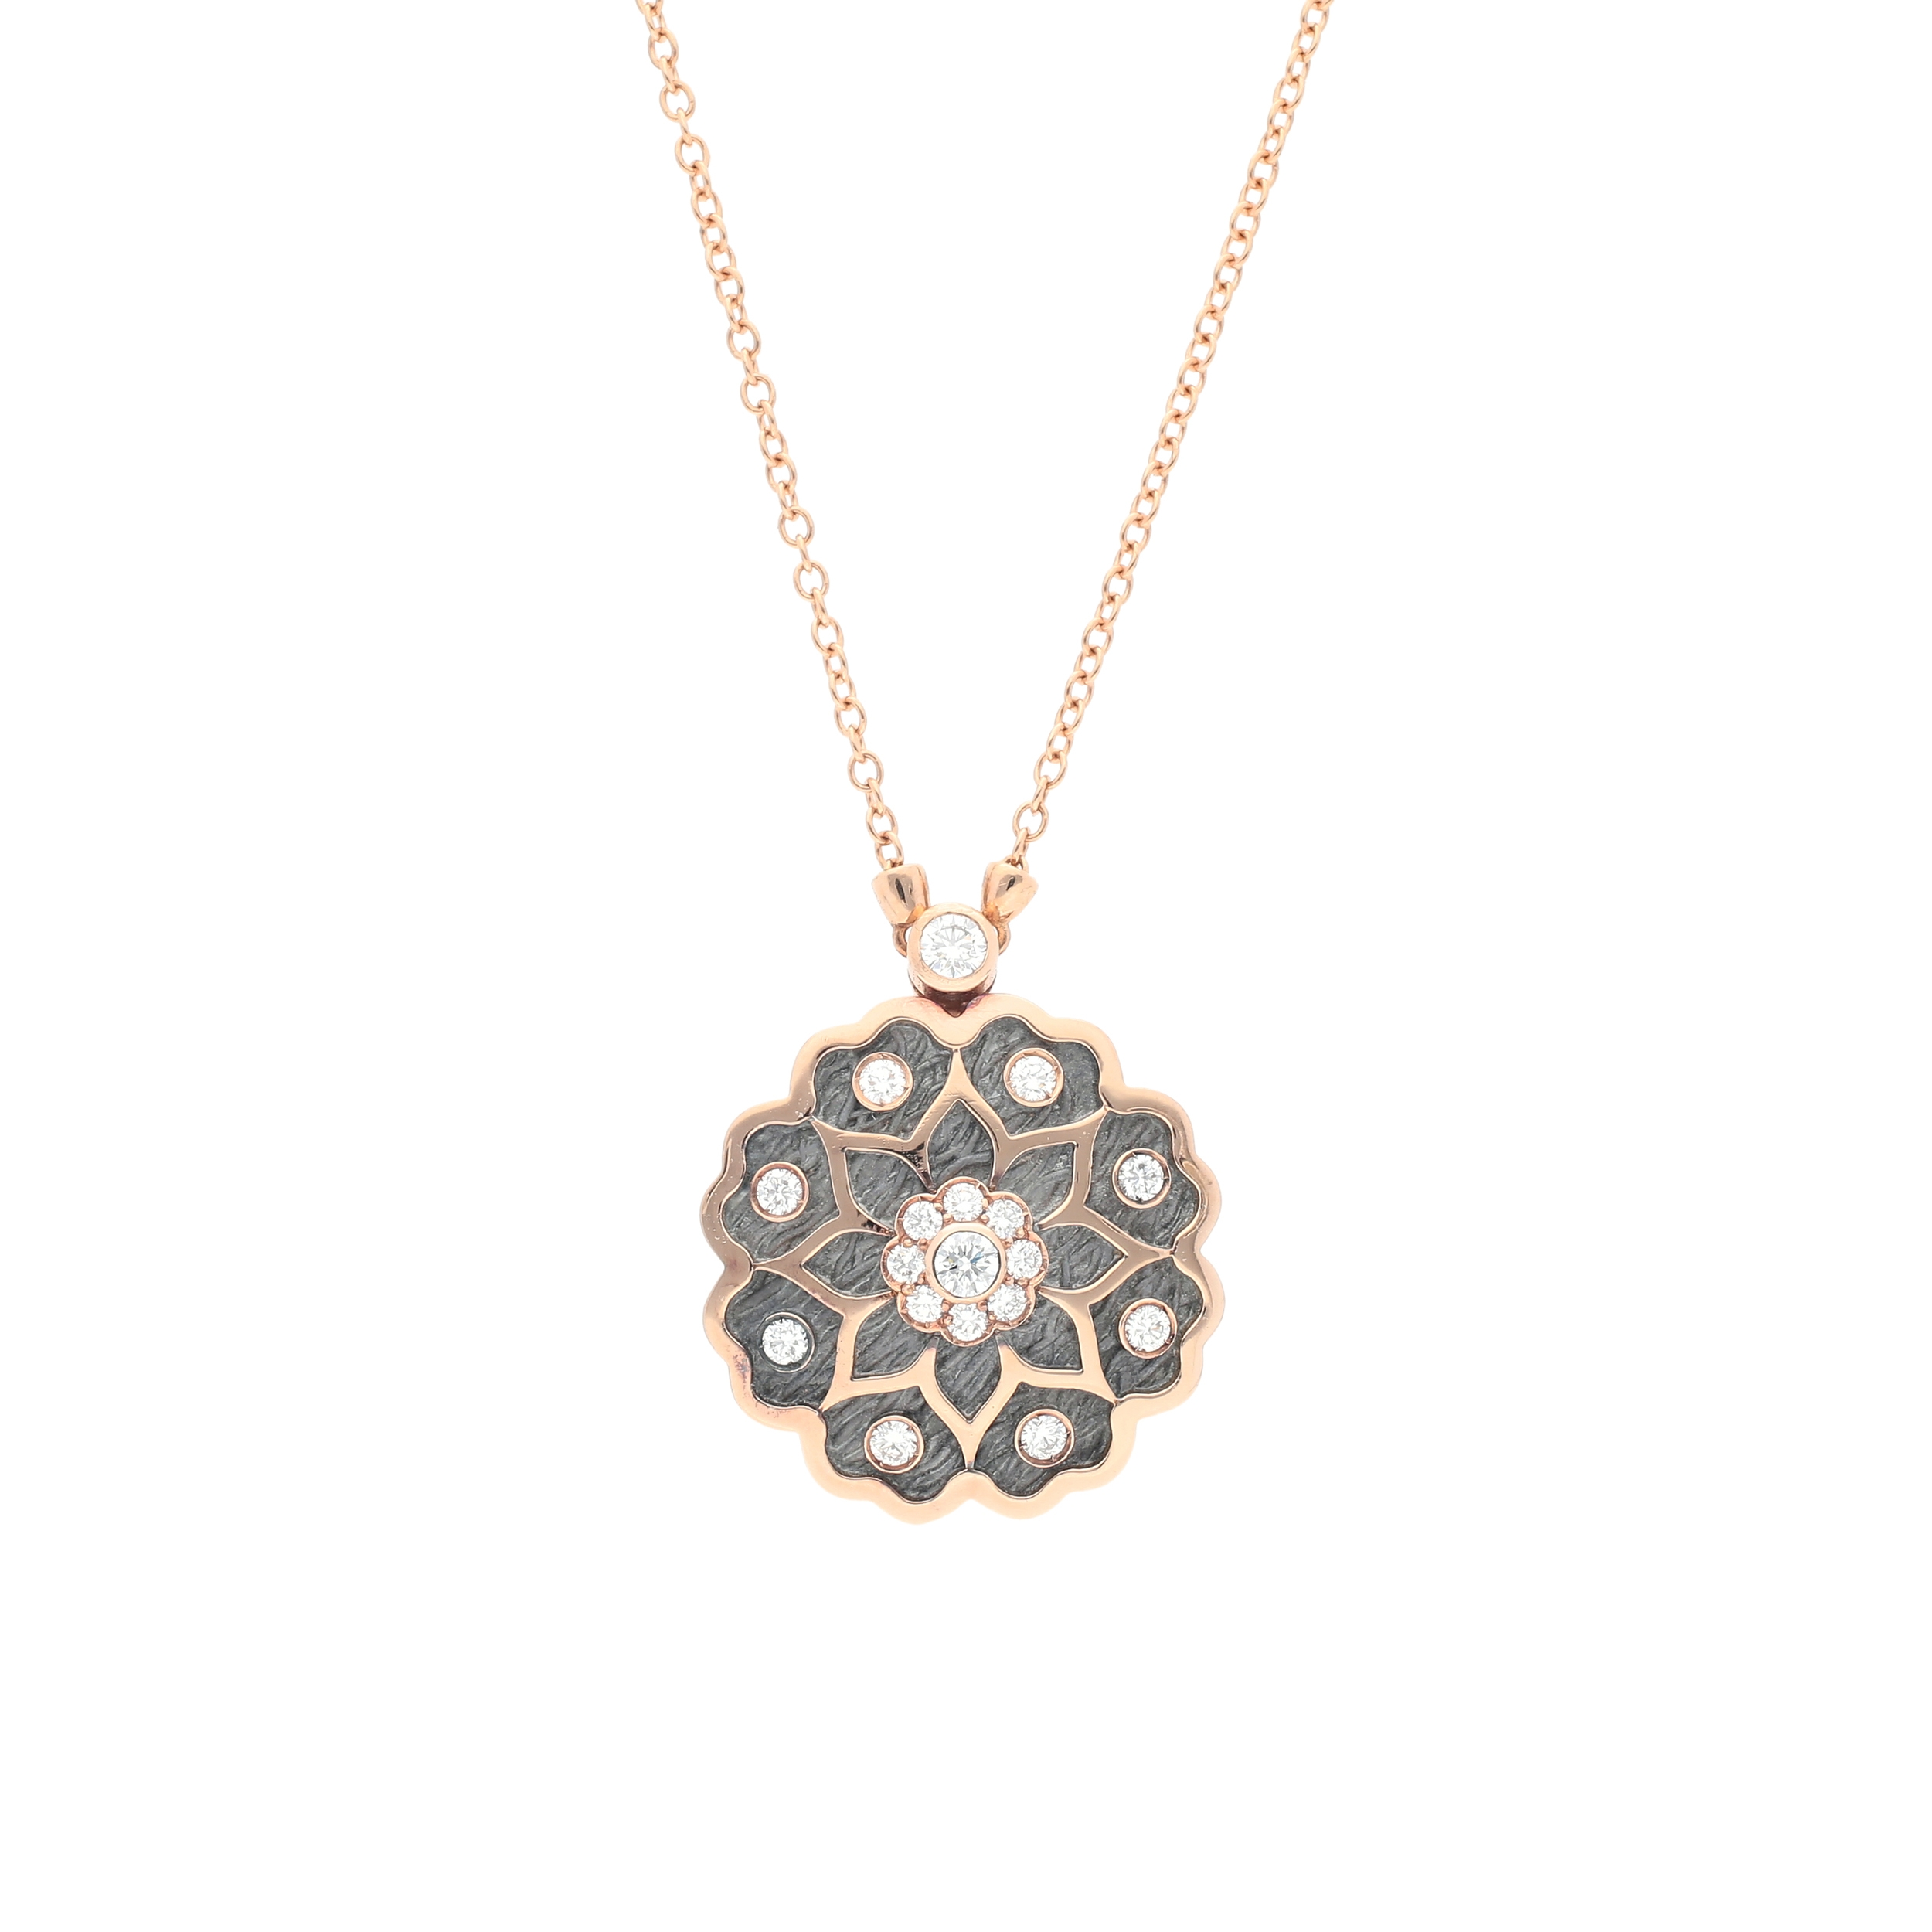 roots collection Pendant silver oxidized and 18 kt rose gold with diamonds